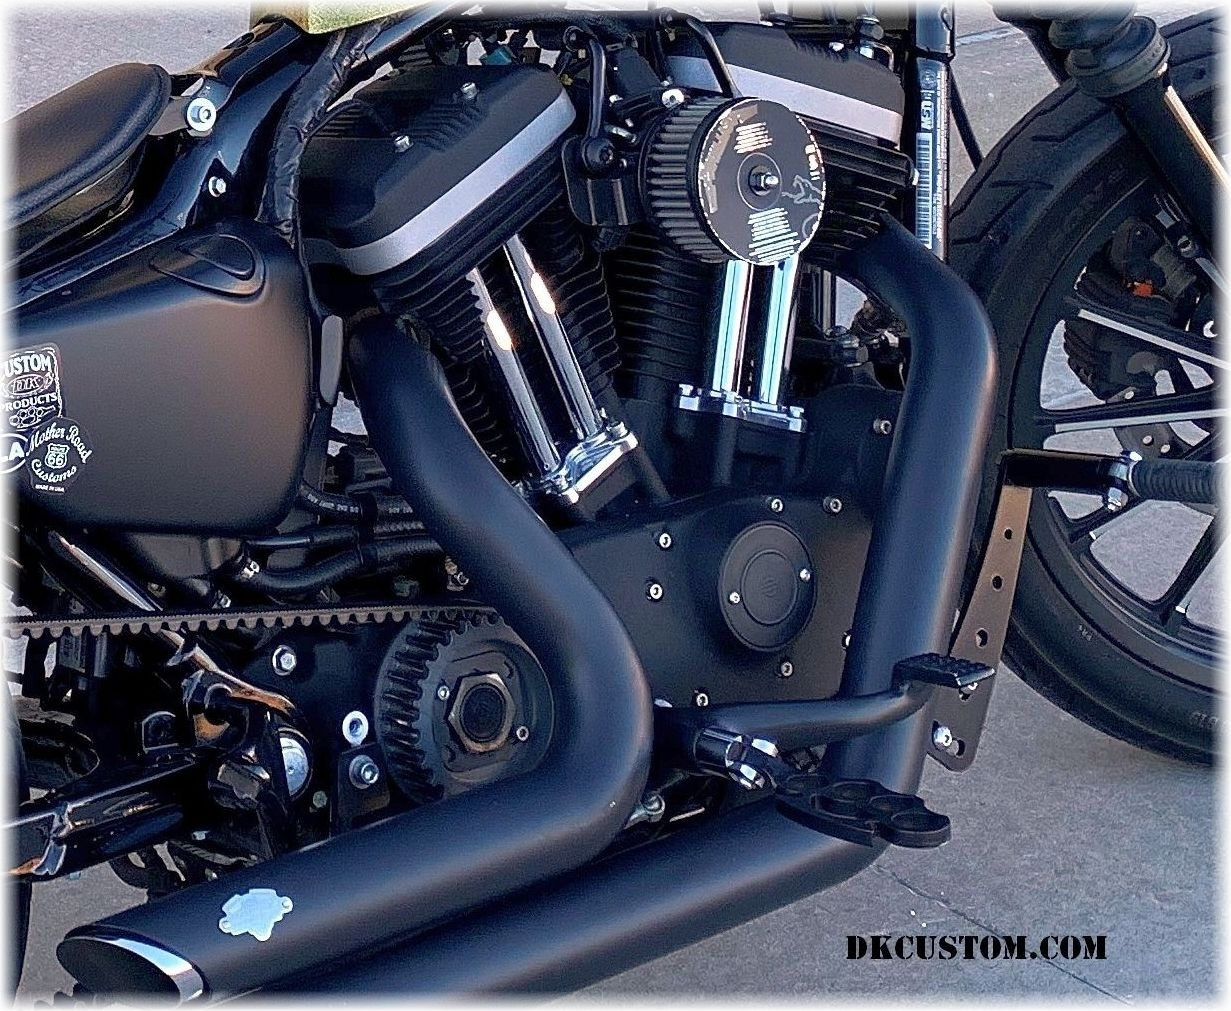 DK Custom Products Harley Sportster Dyna Stealth Adjustable Highway Peg Mounting Kit Chrome Black